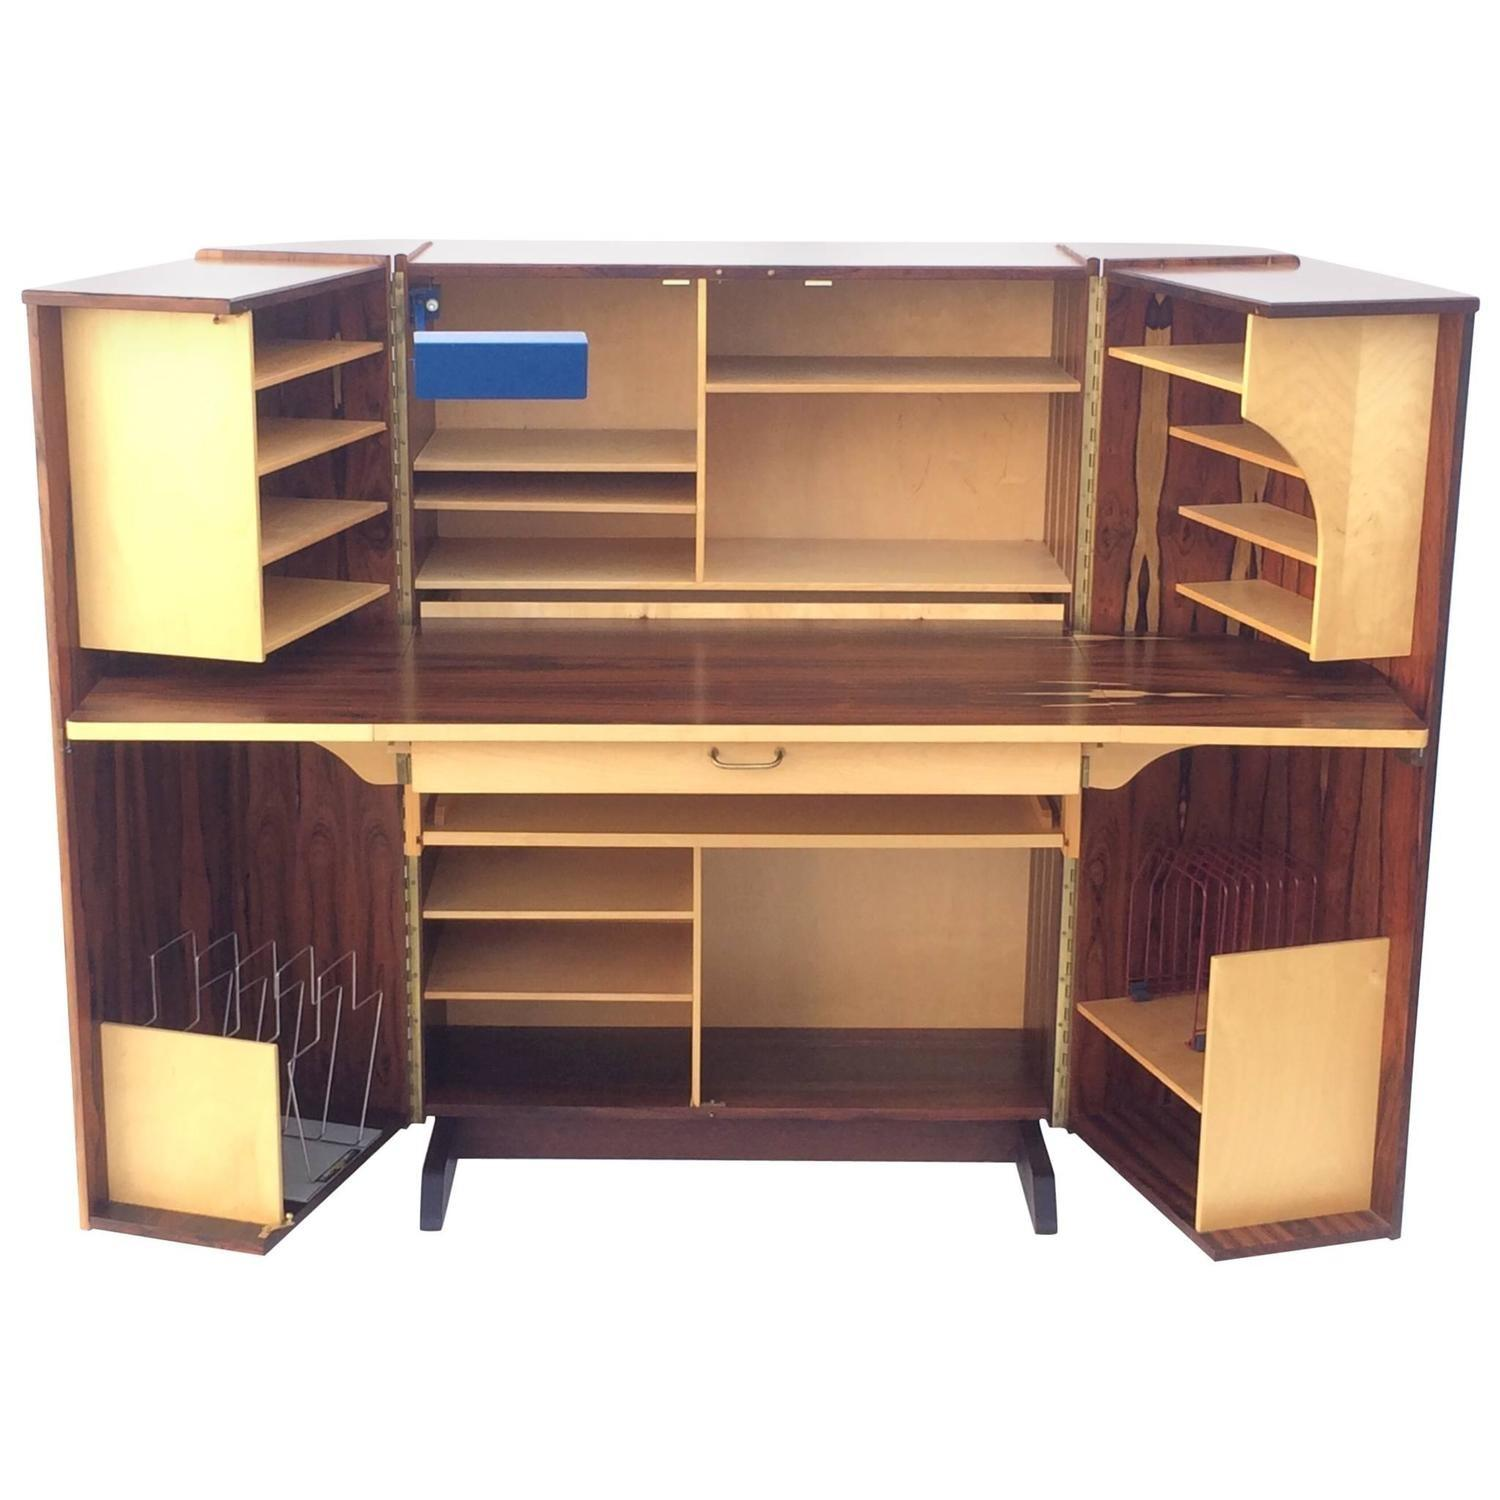 Likeable Ombre Brown Wooden Fold Desk Ideas Formal